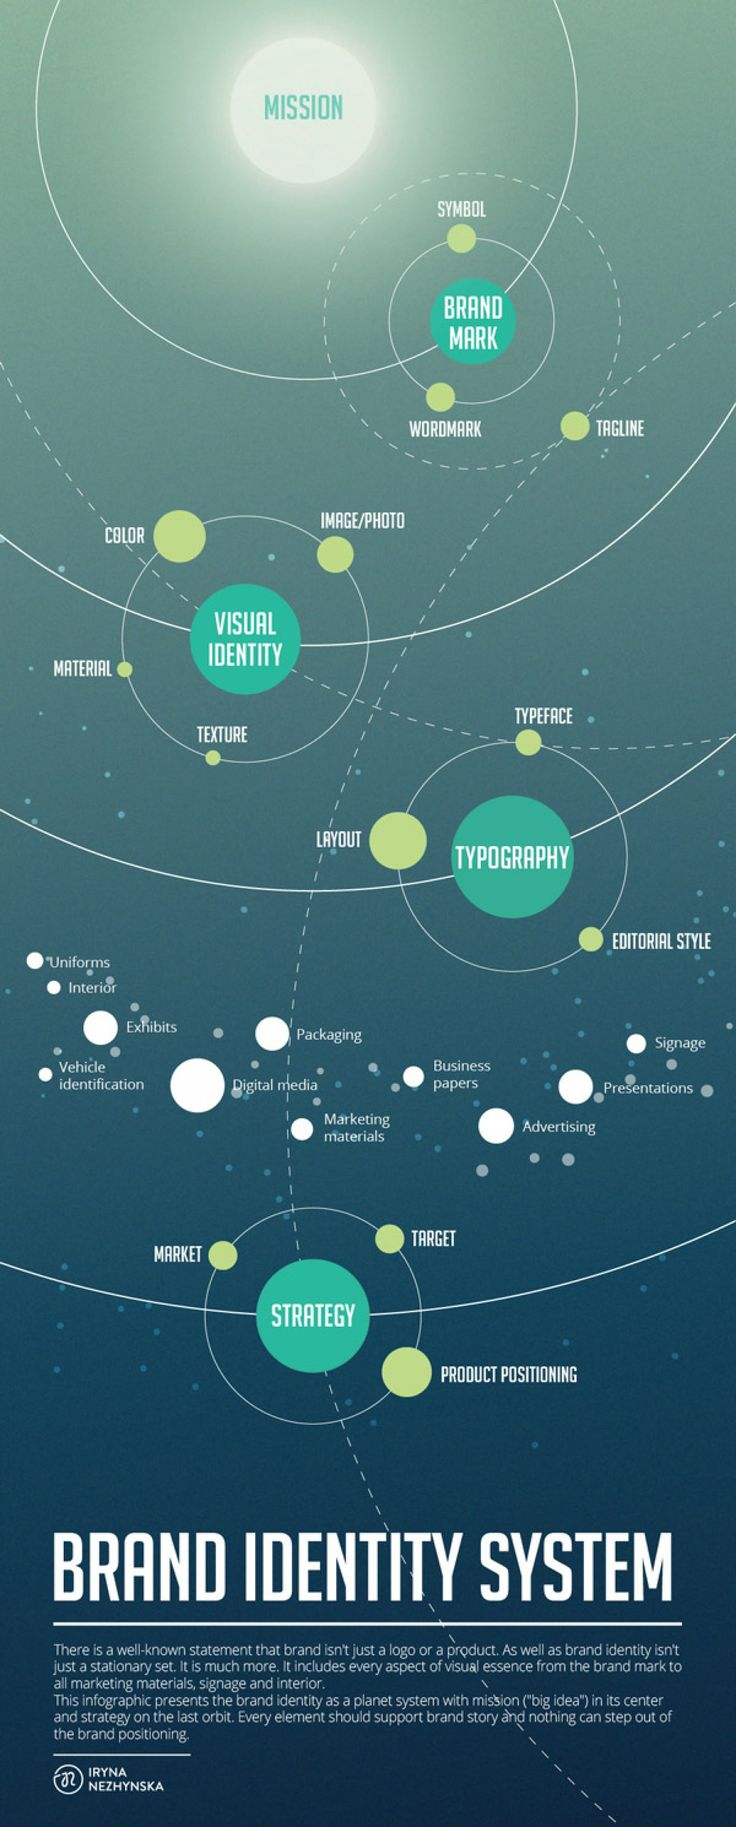 Brand Identity System - Infographic - - - @Liz Mester Mester Mester Mester Mester Mester Blomenkamp I LOVE this. This explains it so perfectly. This is very similar to my mind maps...